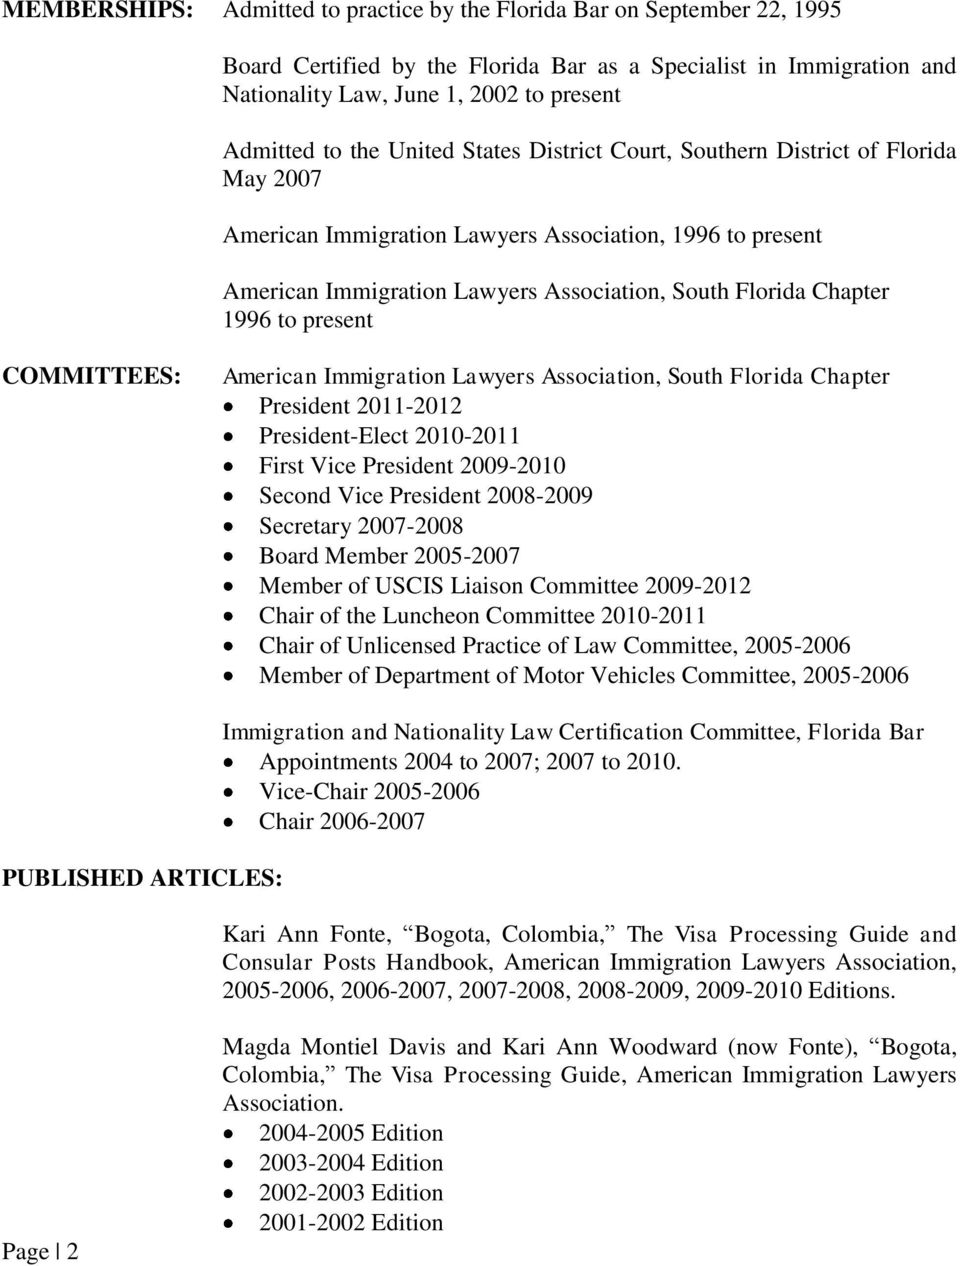 to present COMMITTEES: American Immigration Lawyers Association, South Florida Chapter President 2011-2012 President-Elect 2010-2011 First Vice President 2009-2010 Second Vice President 2008-2009